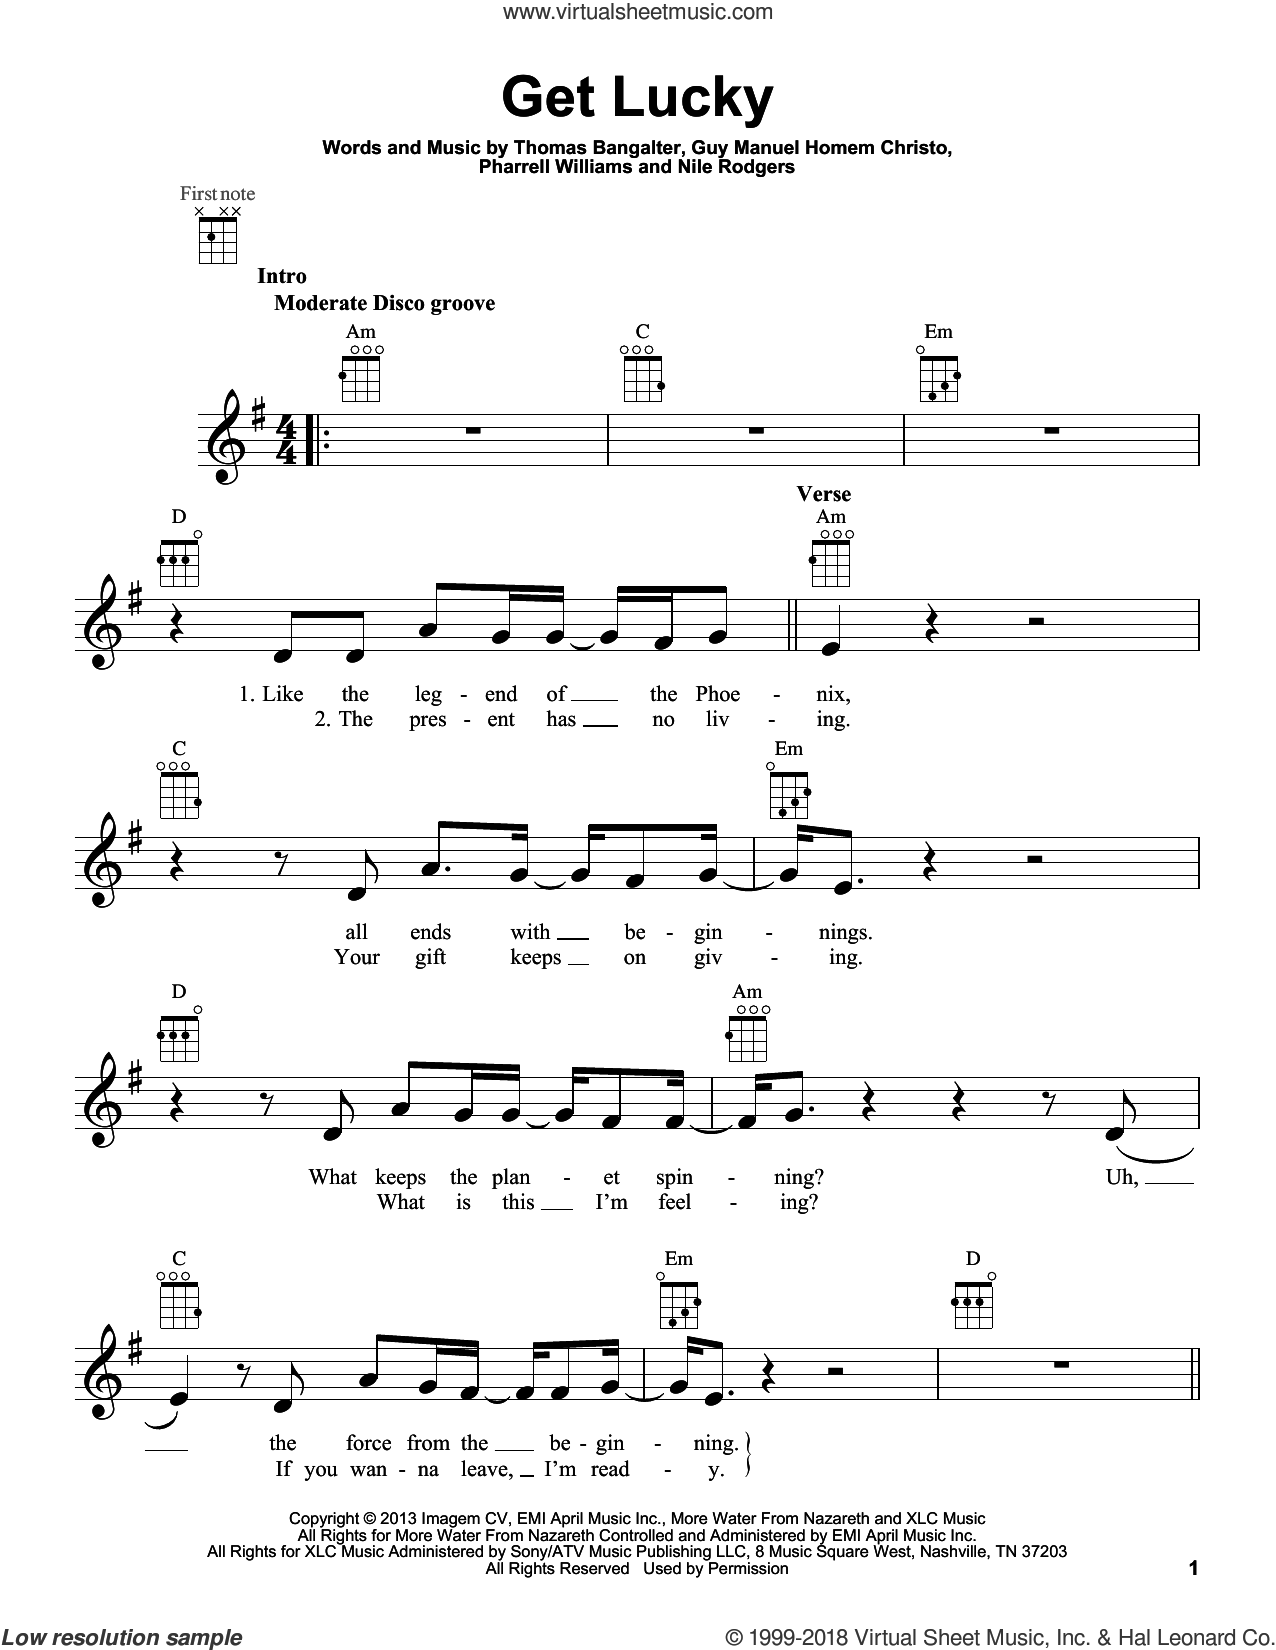 Get Lucky sheet music for ukulele by Daft Punk Featuring Pharrell Williams, Guy Manuel Homem Christo, Nile Rodgers, Pharrell Williams and Thomas Bangalter, intermediate